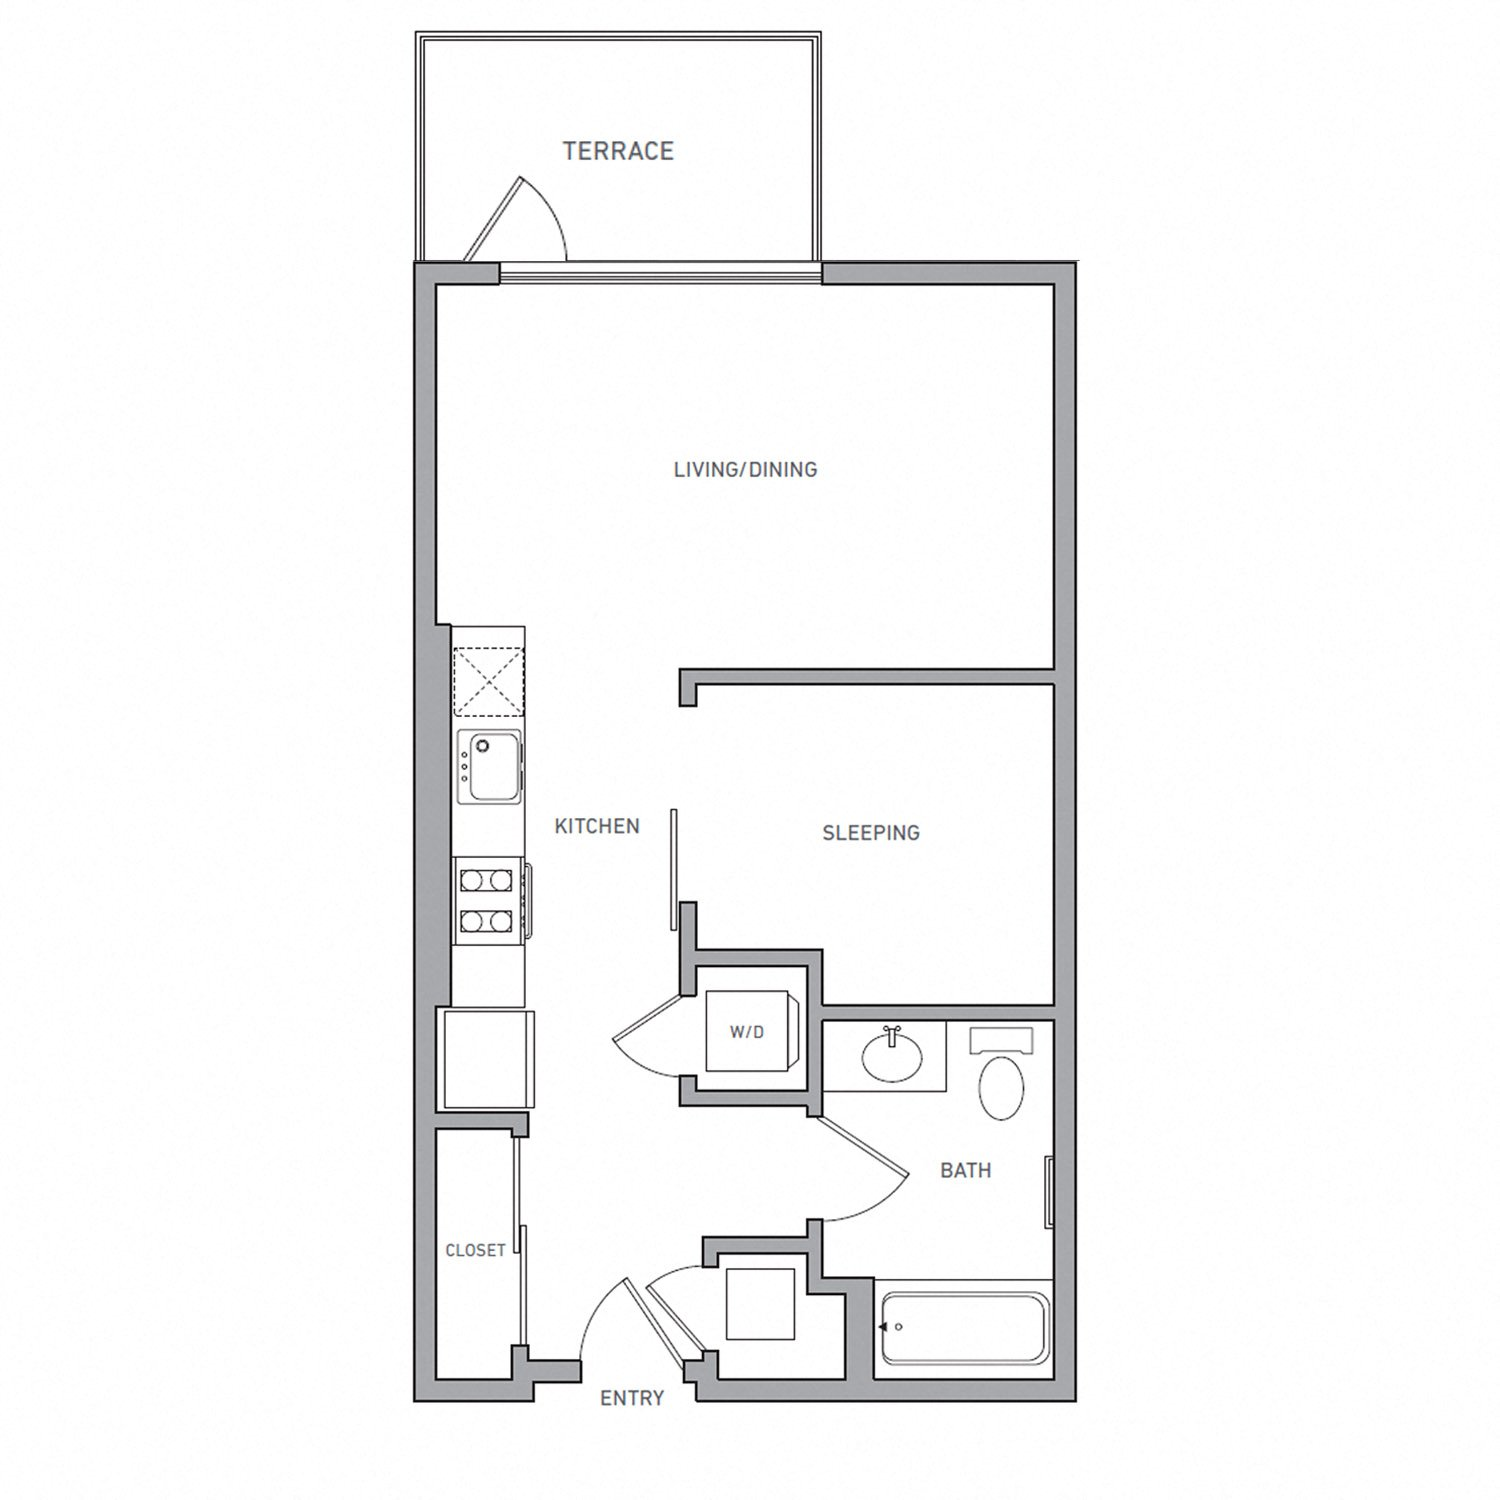 A One U B floor plan diagram. One bedroom, one bathroom, an open kitchen and living area, a terrace, and a washer dryer.